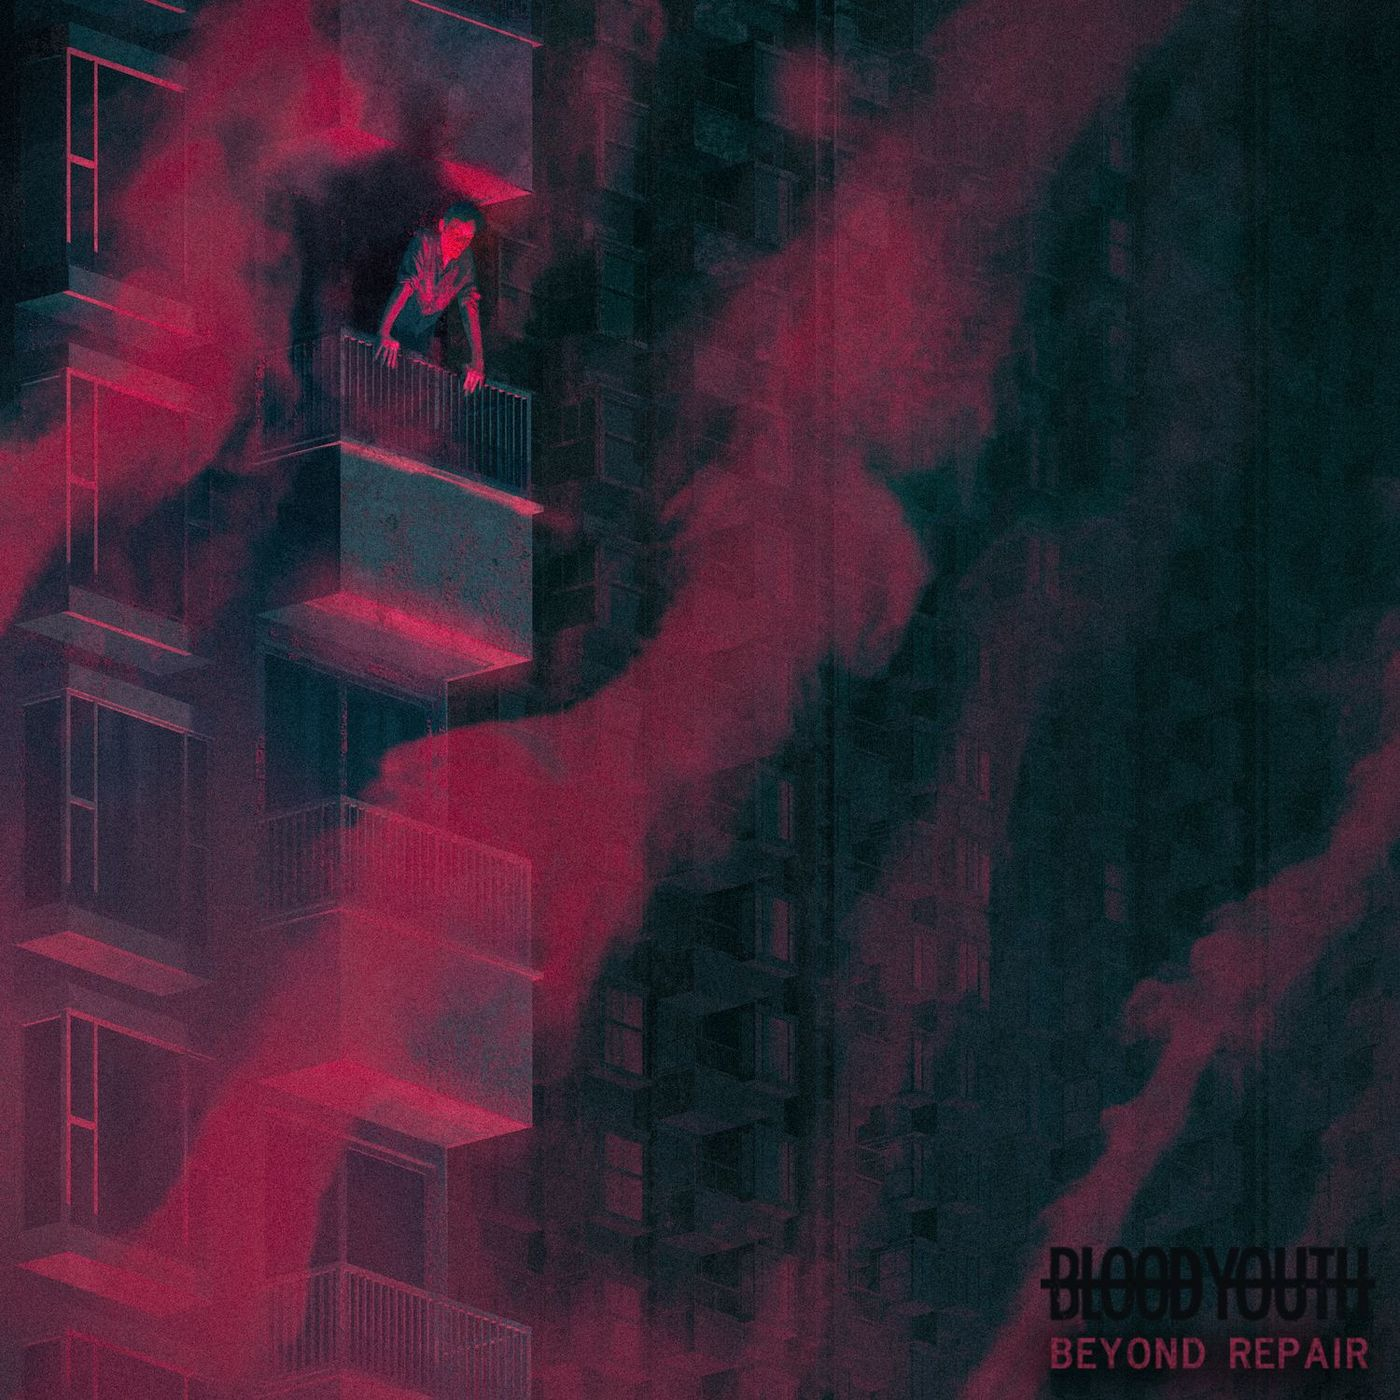 Blood Youth - Beyond Repair (2017)